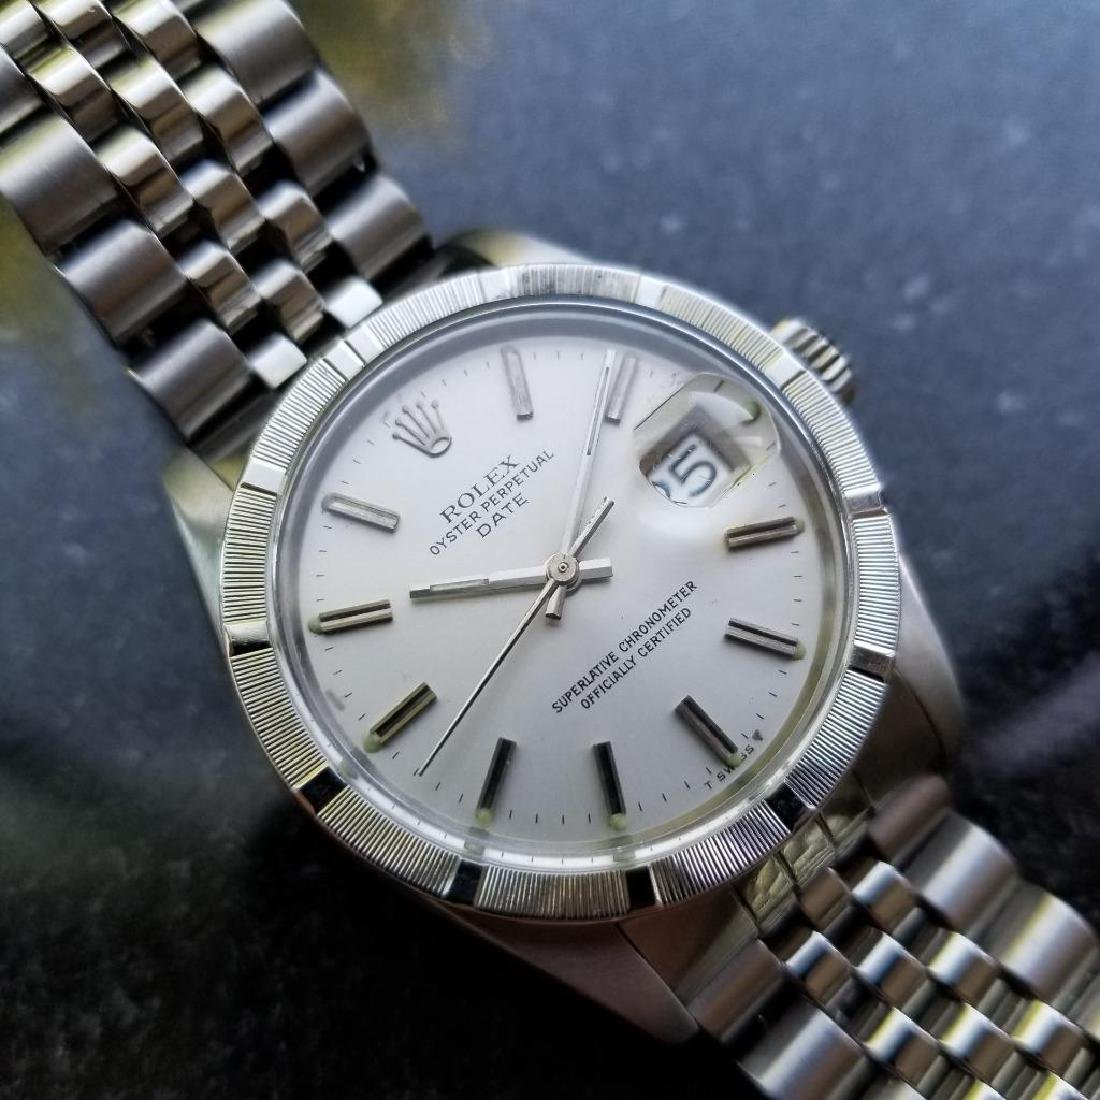 Rolex Oyster Perpetual 1501 Date Vintage 1977 Auto 35mm - 4